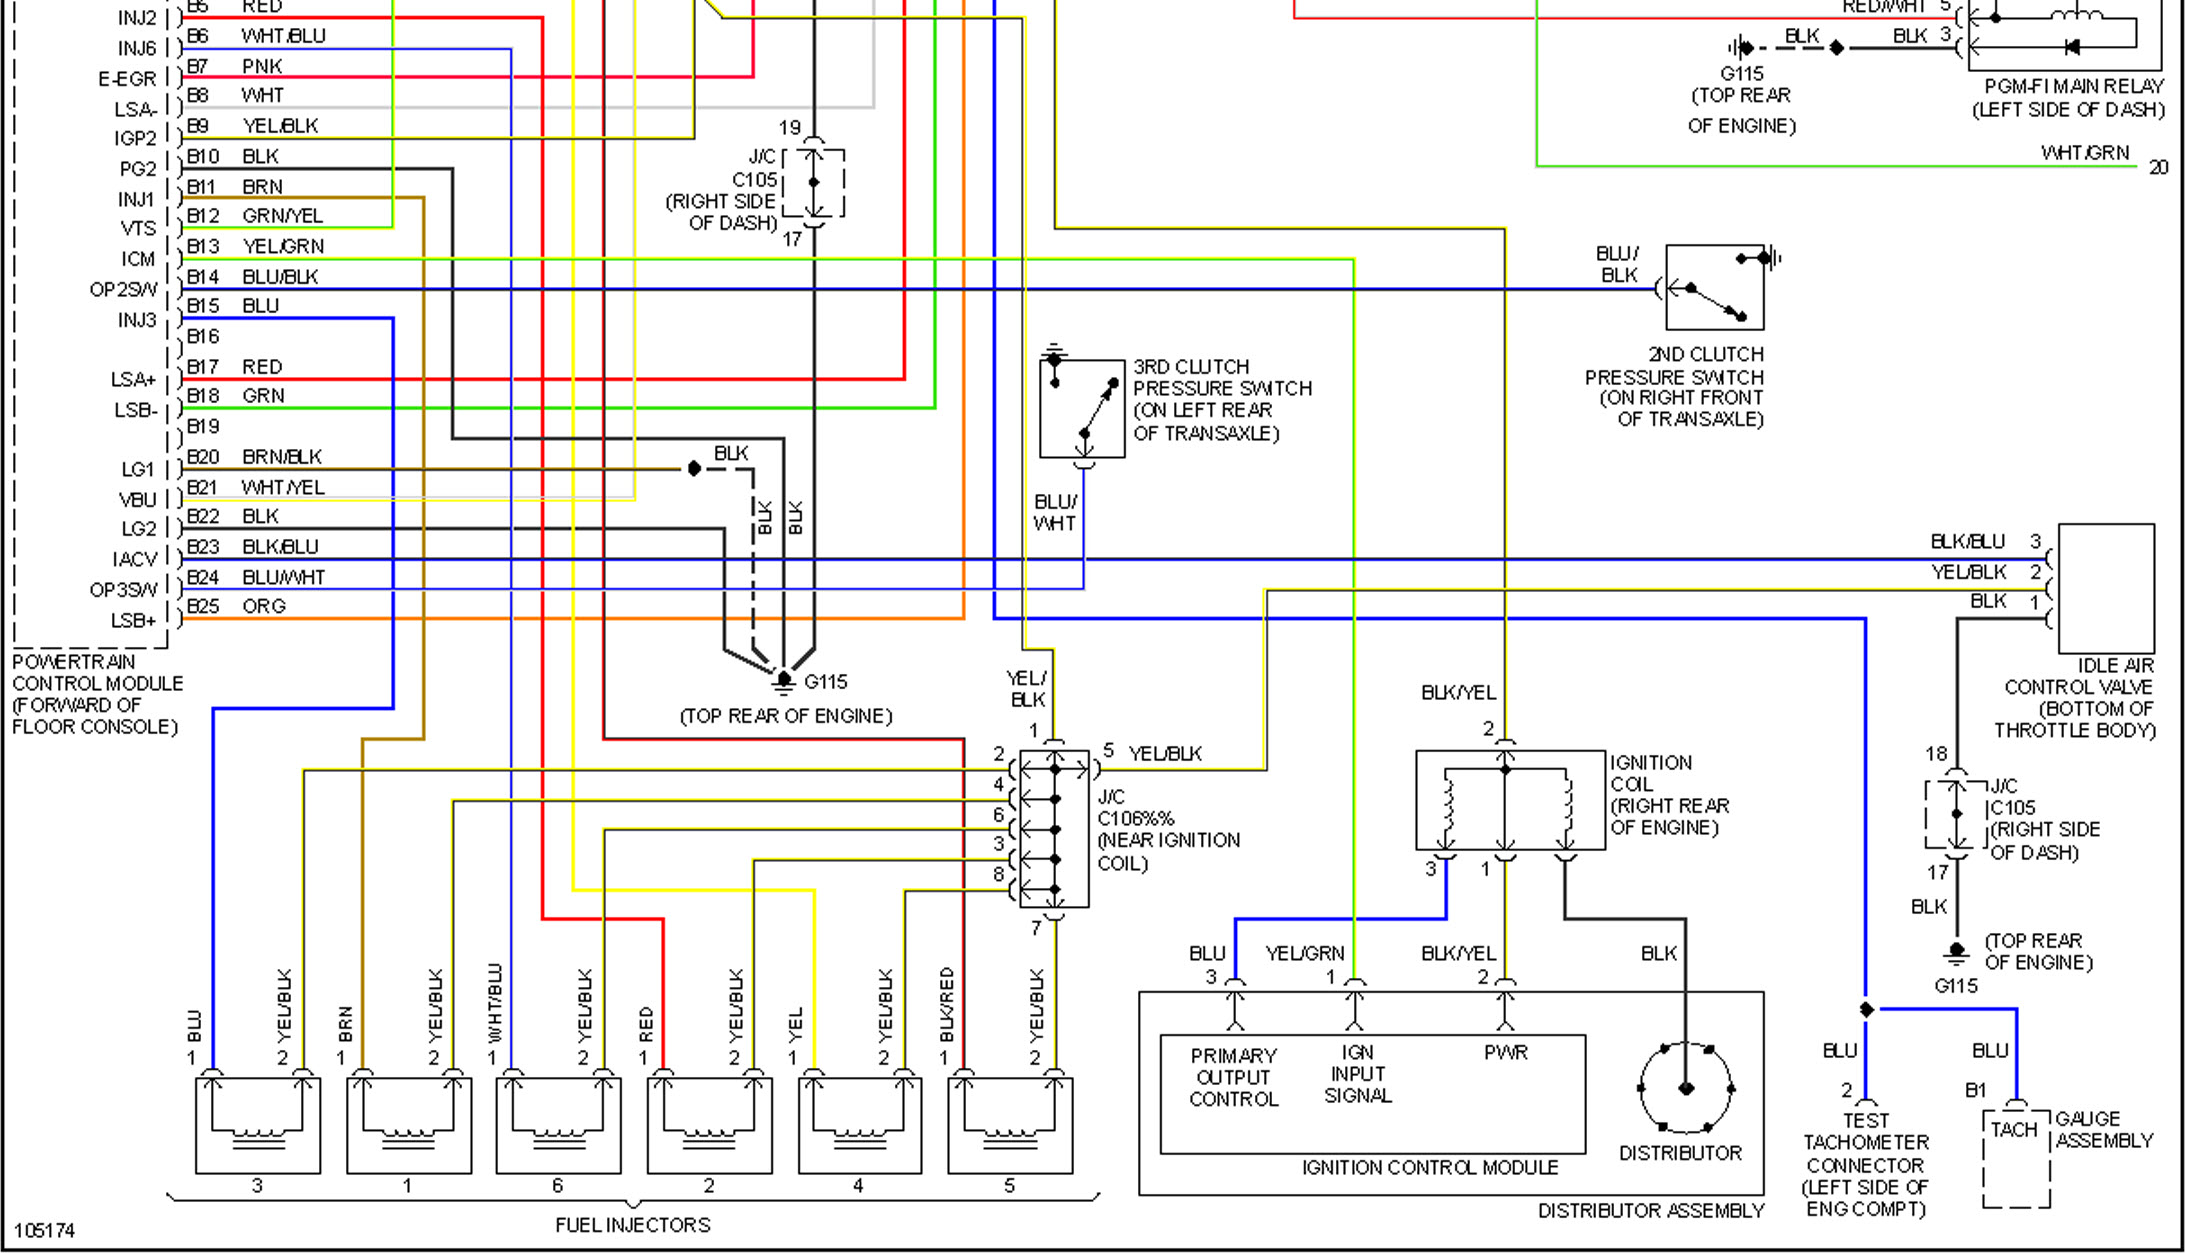 DIAGRAM] 2002 Honda Accord Stereo Wiring Diagram FULL Version HD Quality Wiring  Diagram - LOGICADIAGRAMATICA.EYEPOWER.ITlogicadiagramatica.eyepower.it